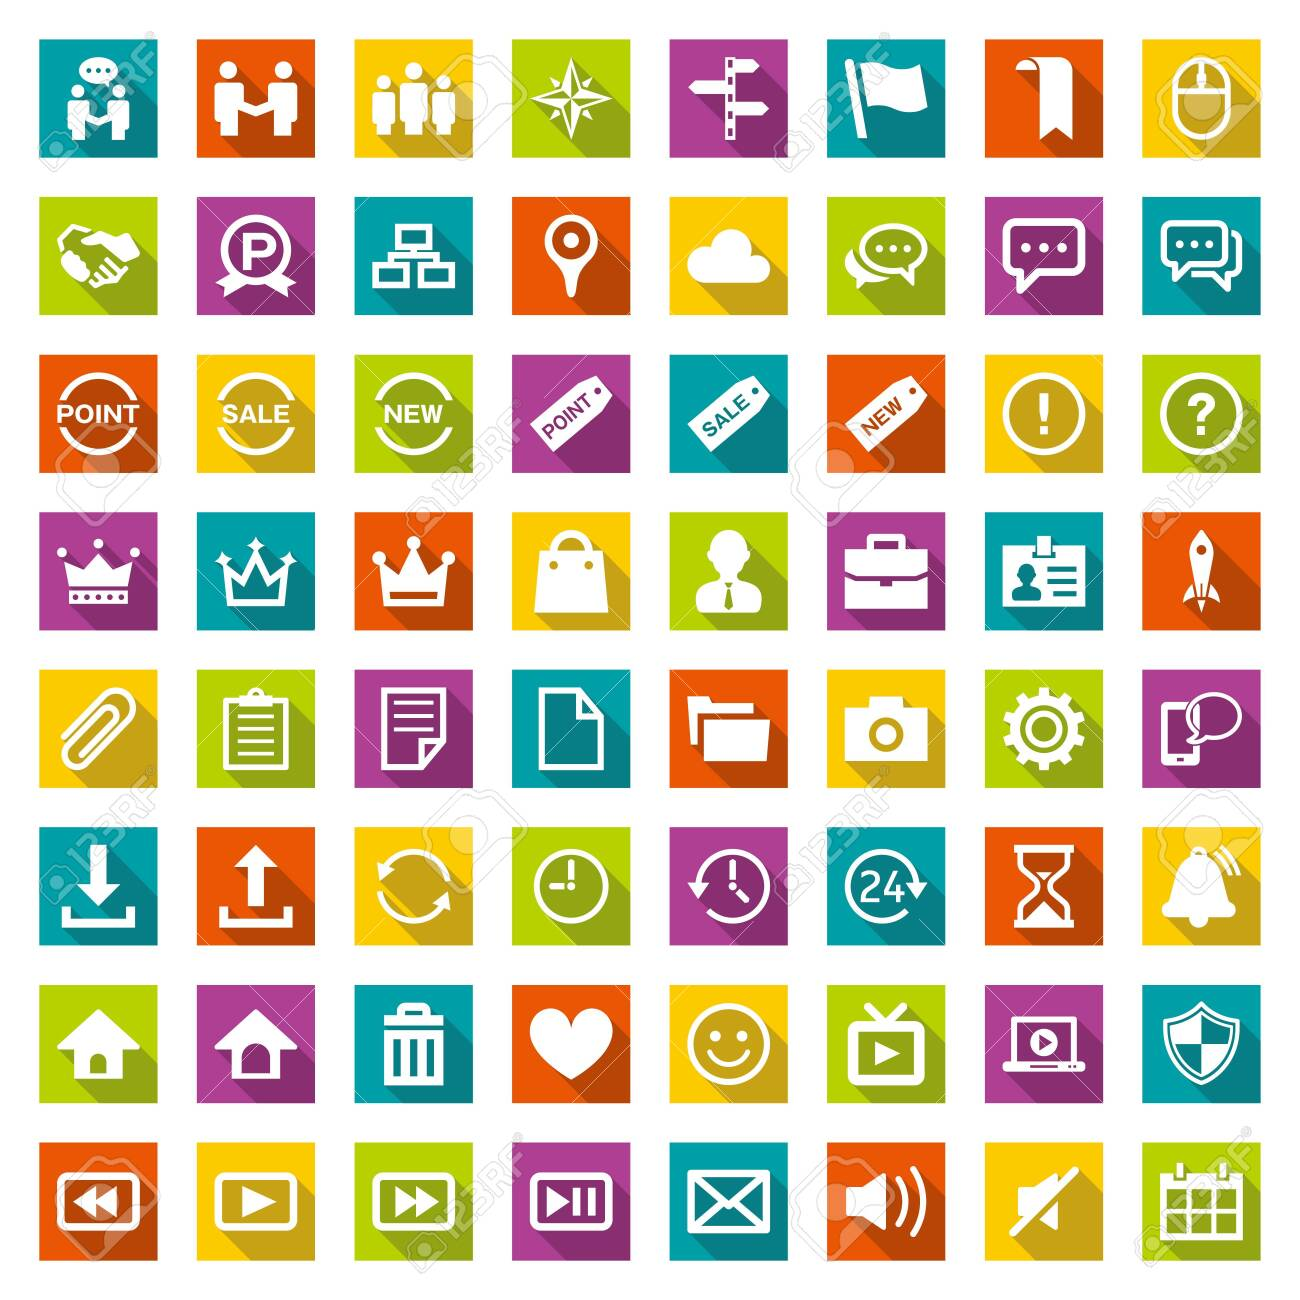 Design icon set suitable for info graphics, websites and print media. - 141332746